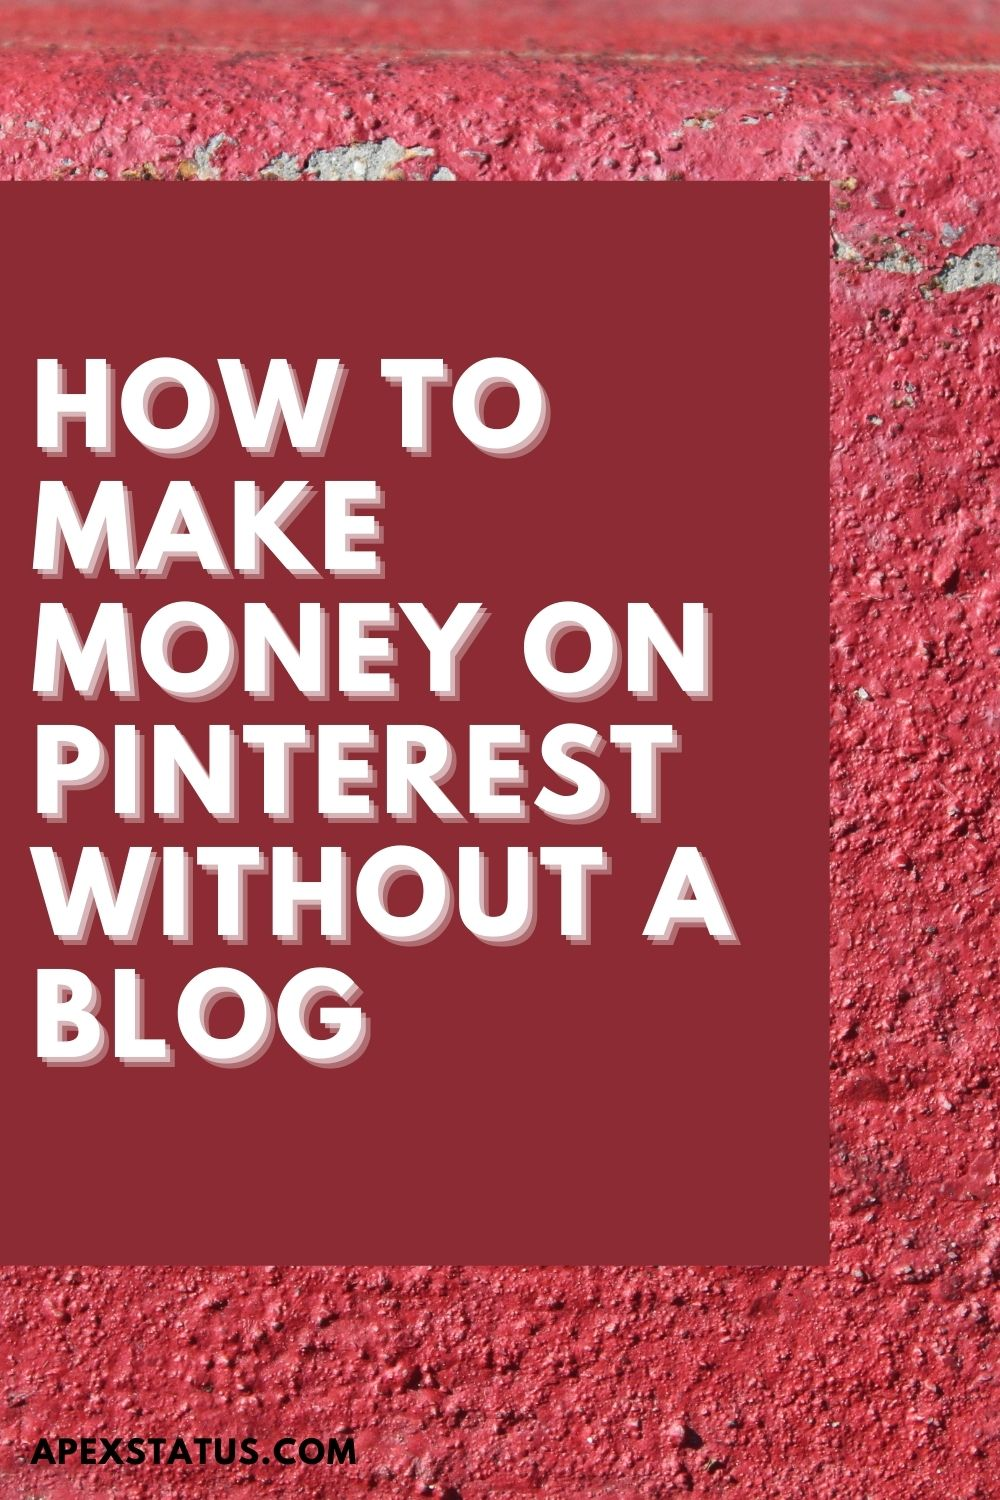 How to Make Money on Pinterest Without a Blog Perfect for Beginners